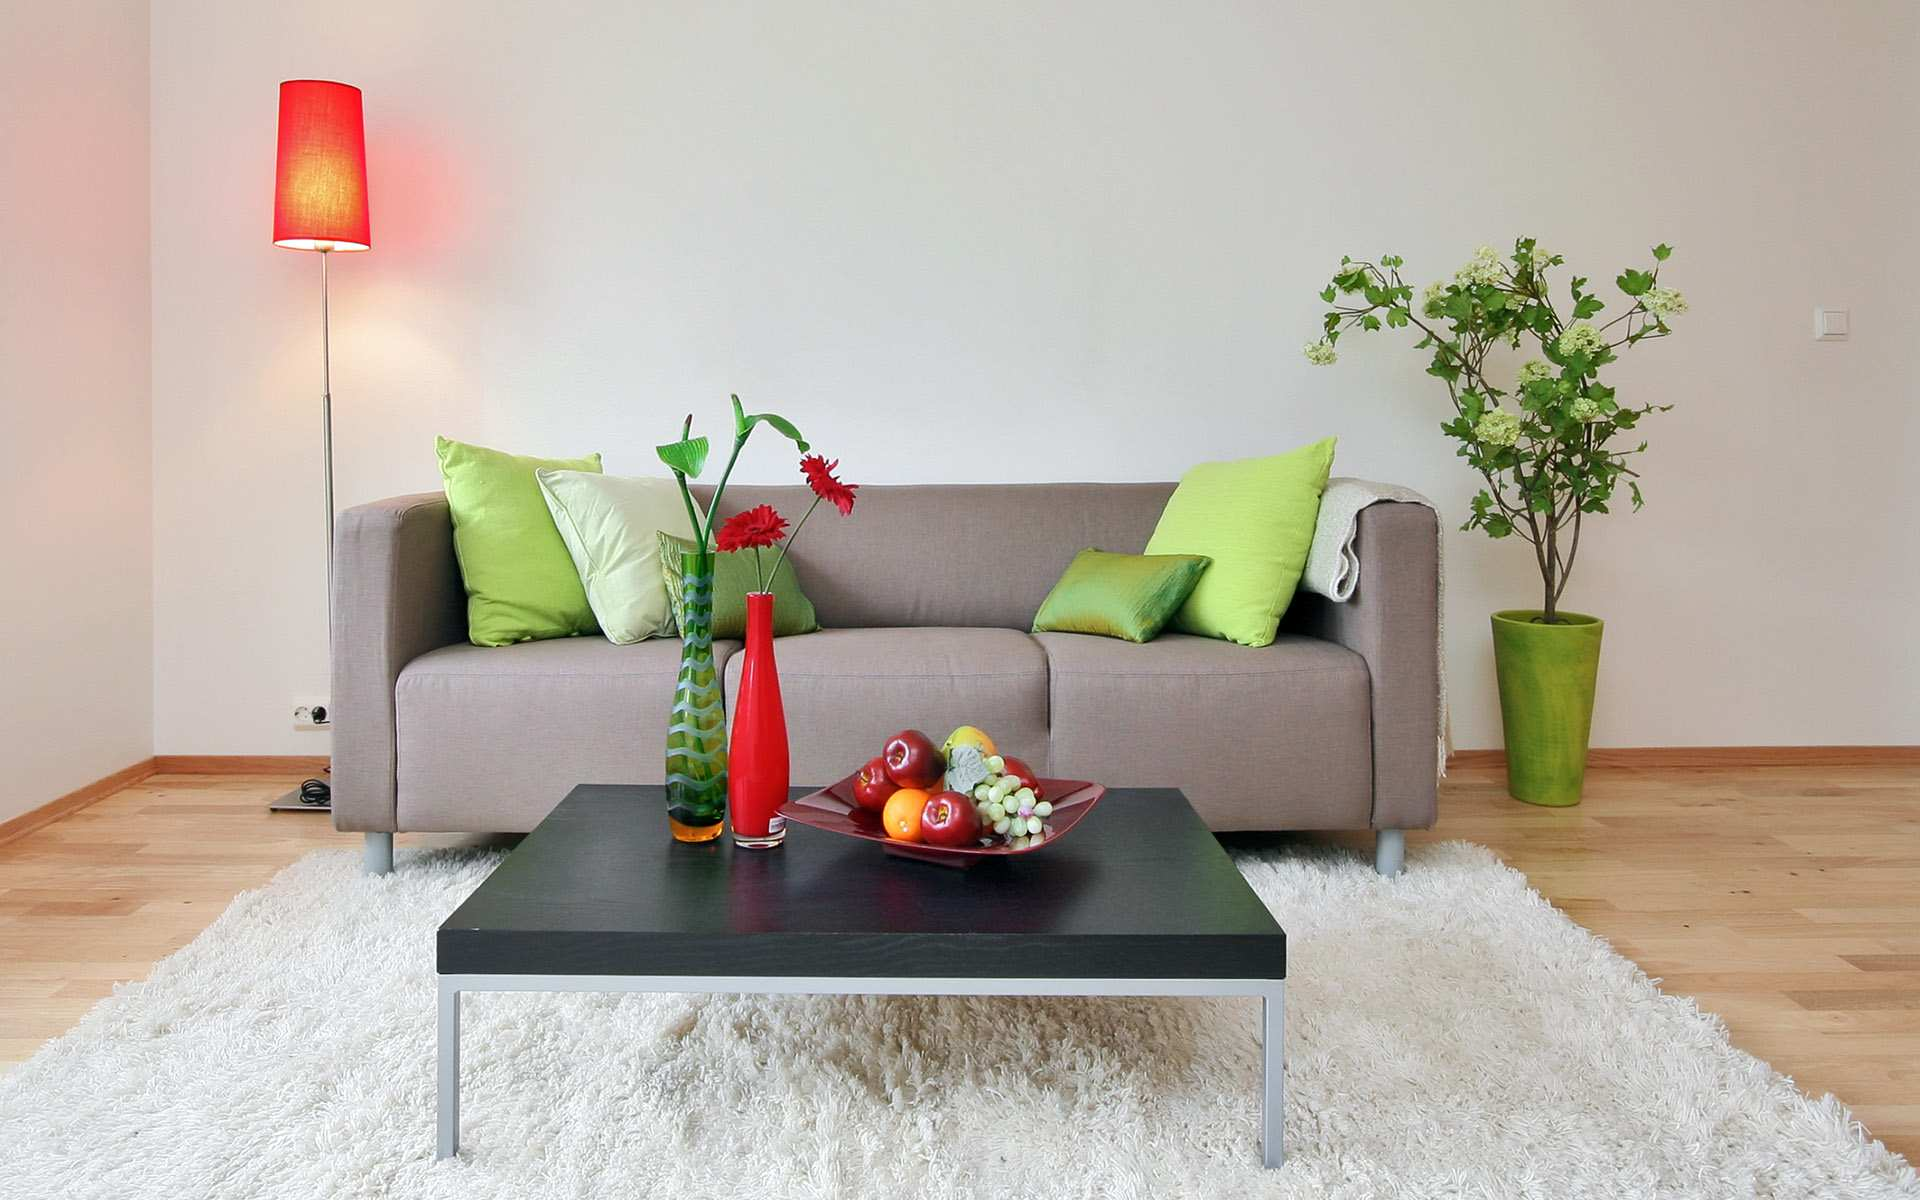 Beige Sofa On White Rug, Surrounded By Green And Red Accessories